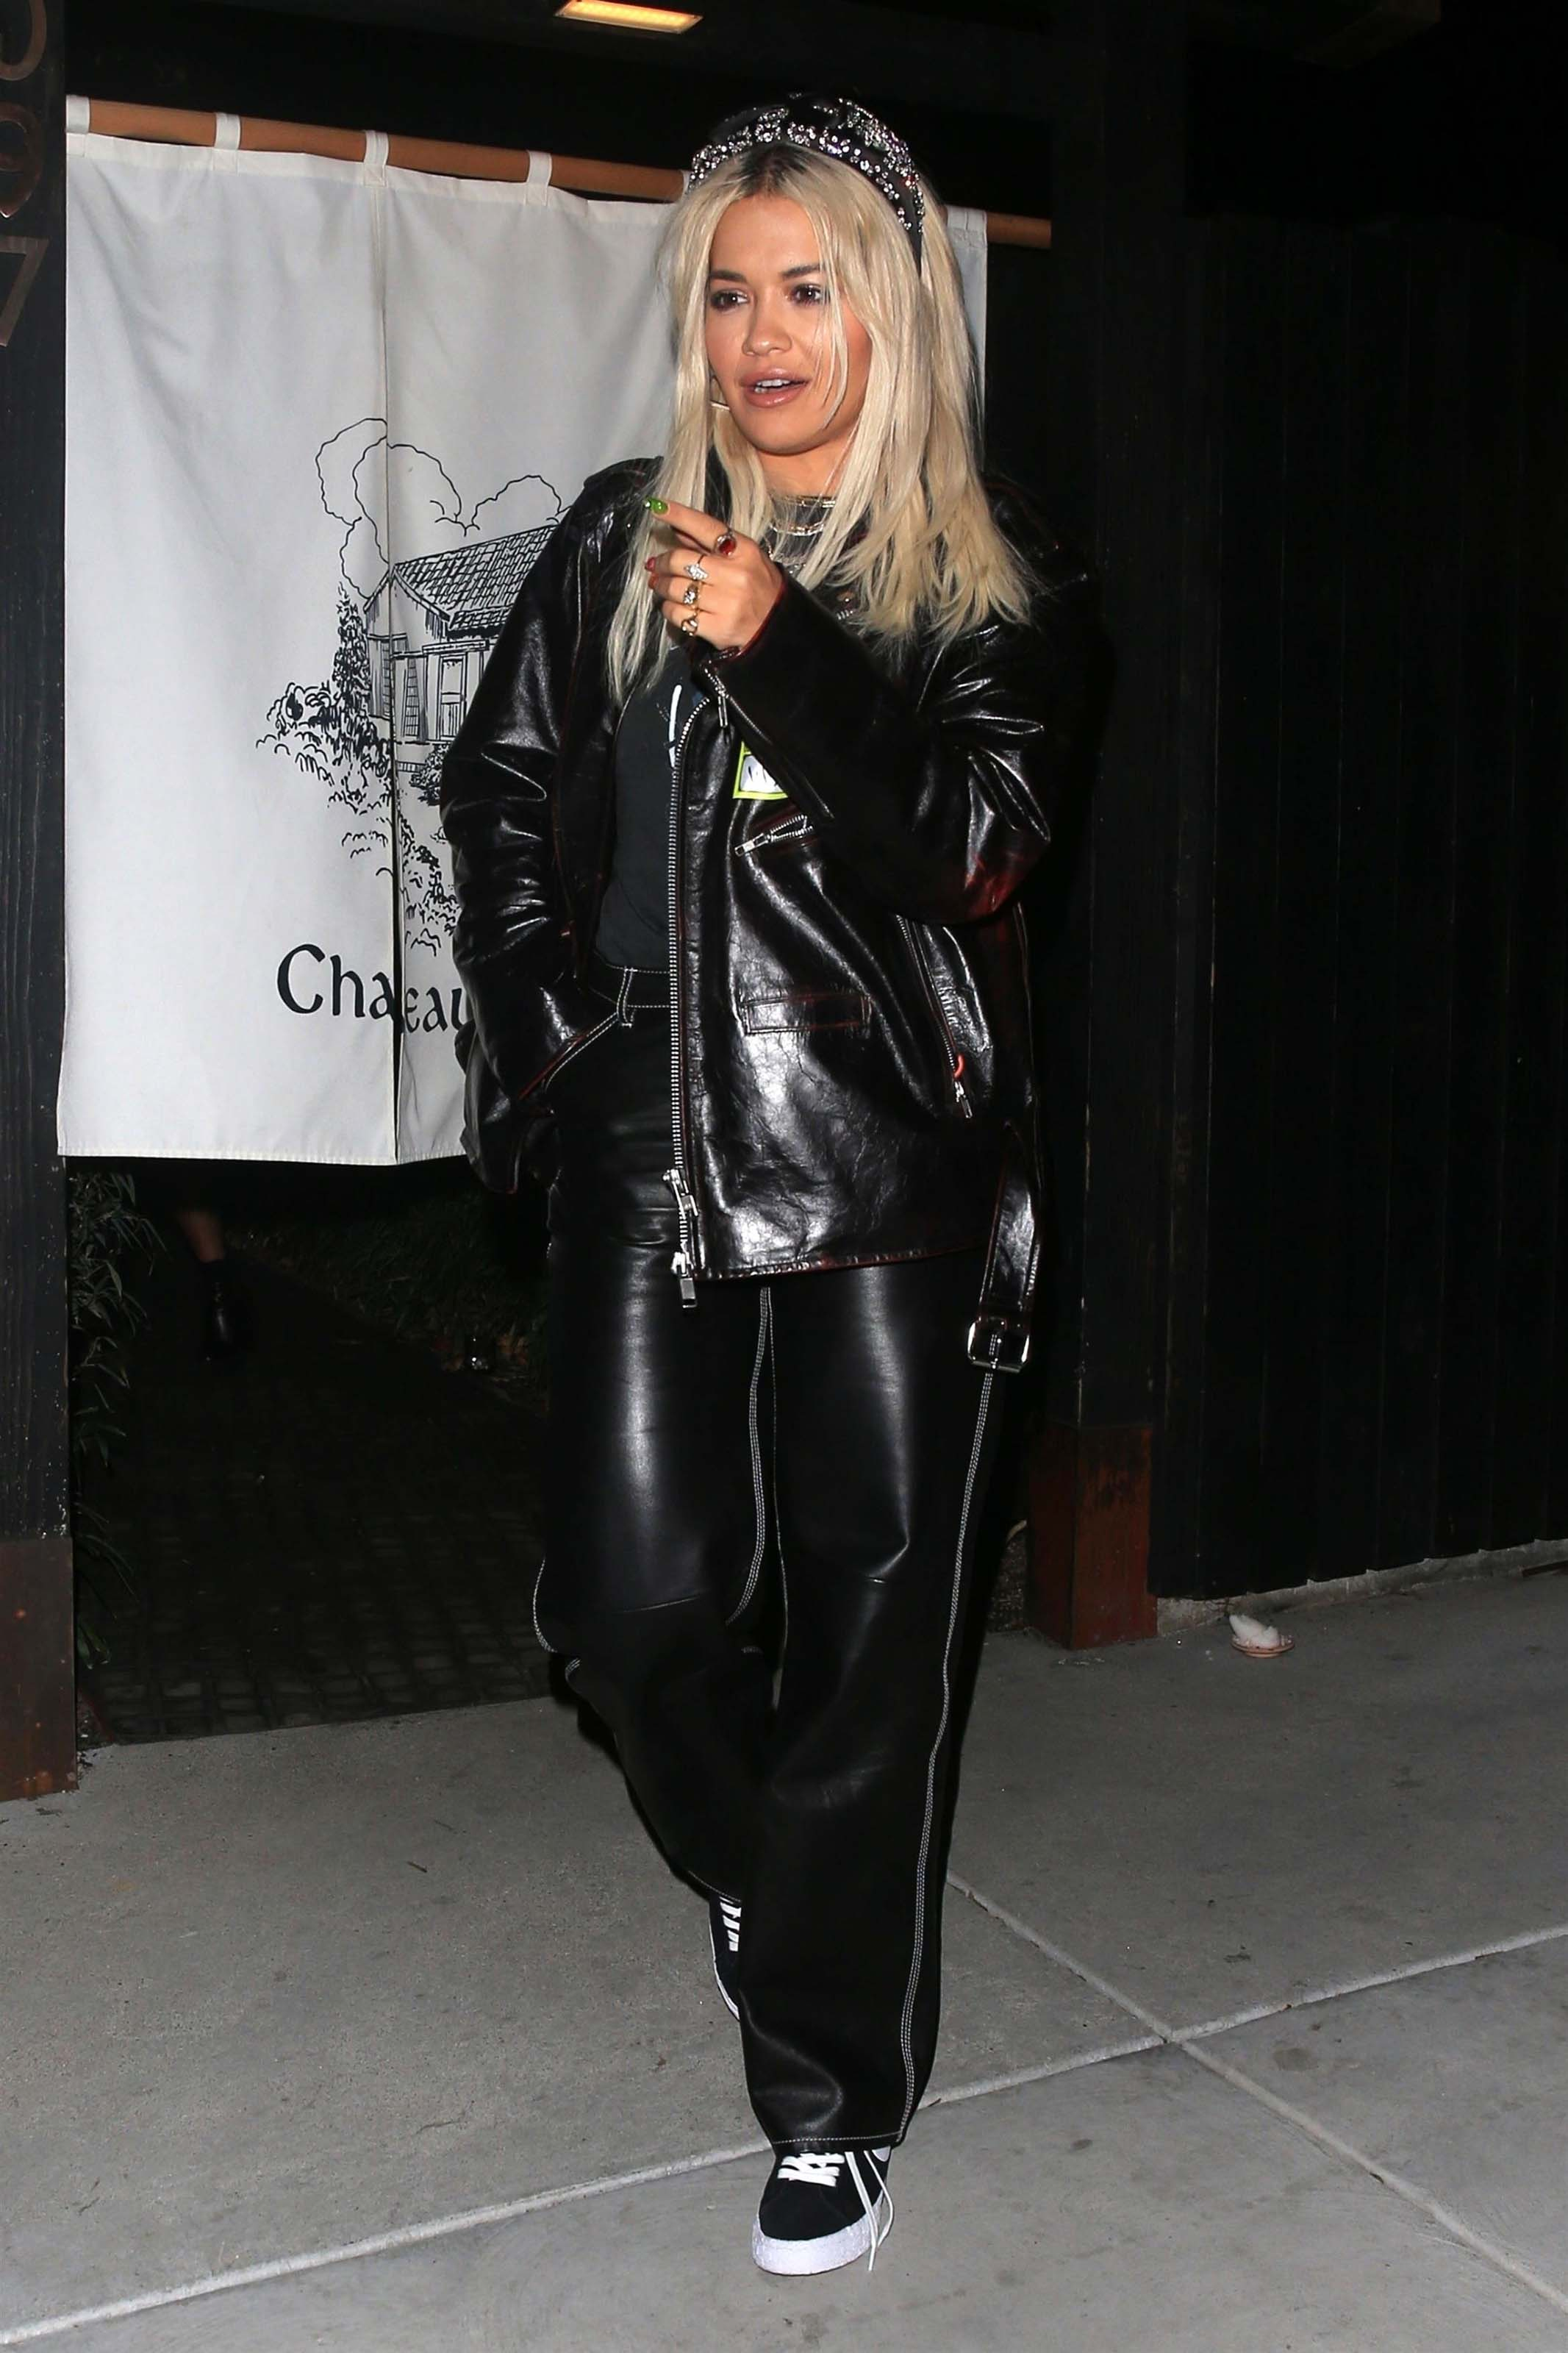 Rita Ora leaving Chateau Hanare